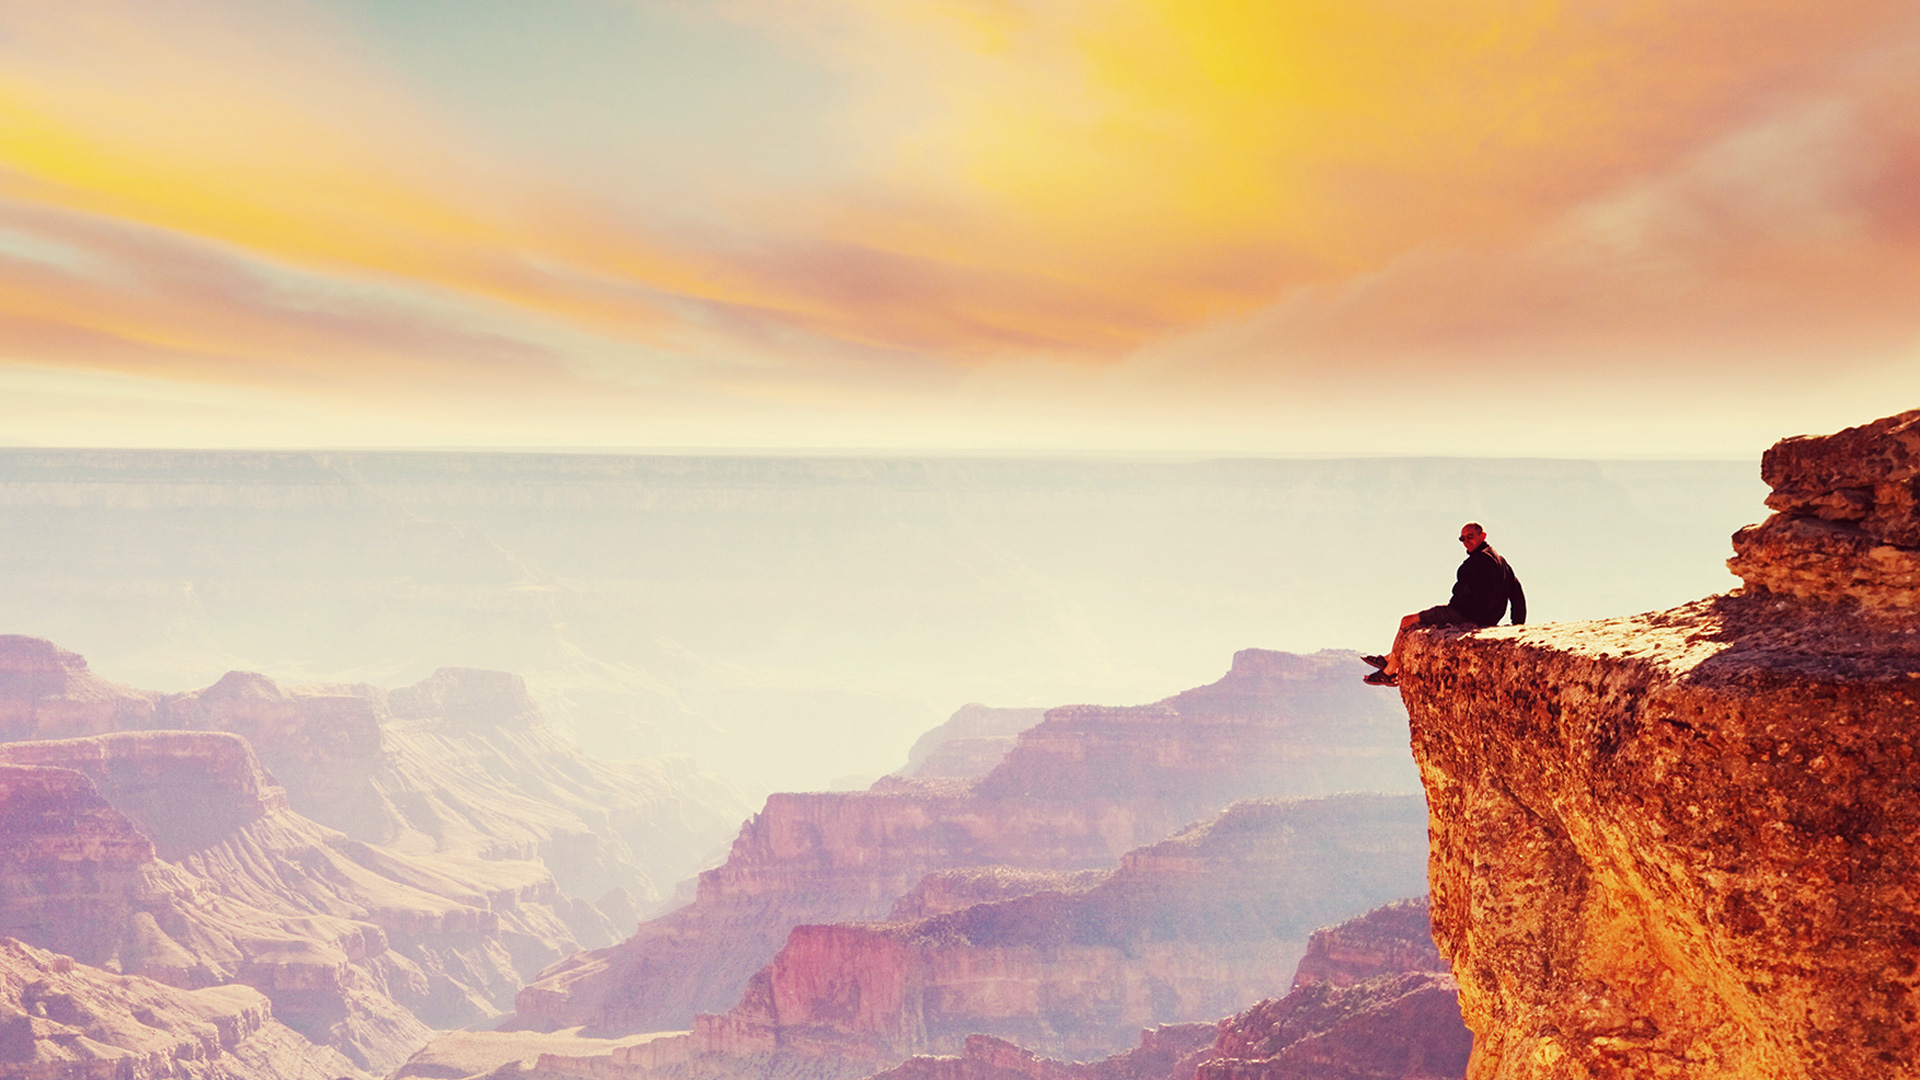 Grand Canyon State Arizona Men/'s Tee Image by Shutterstock